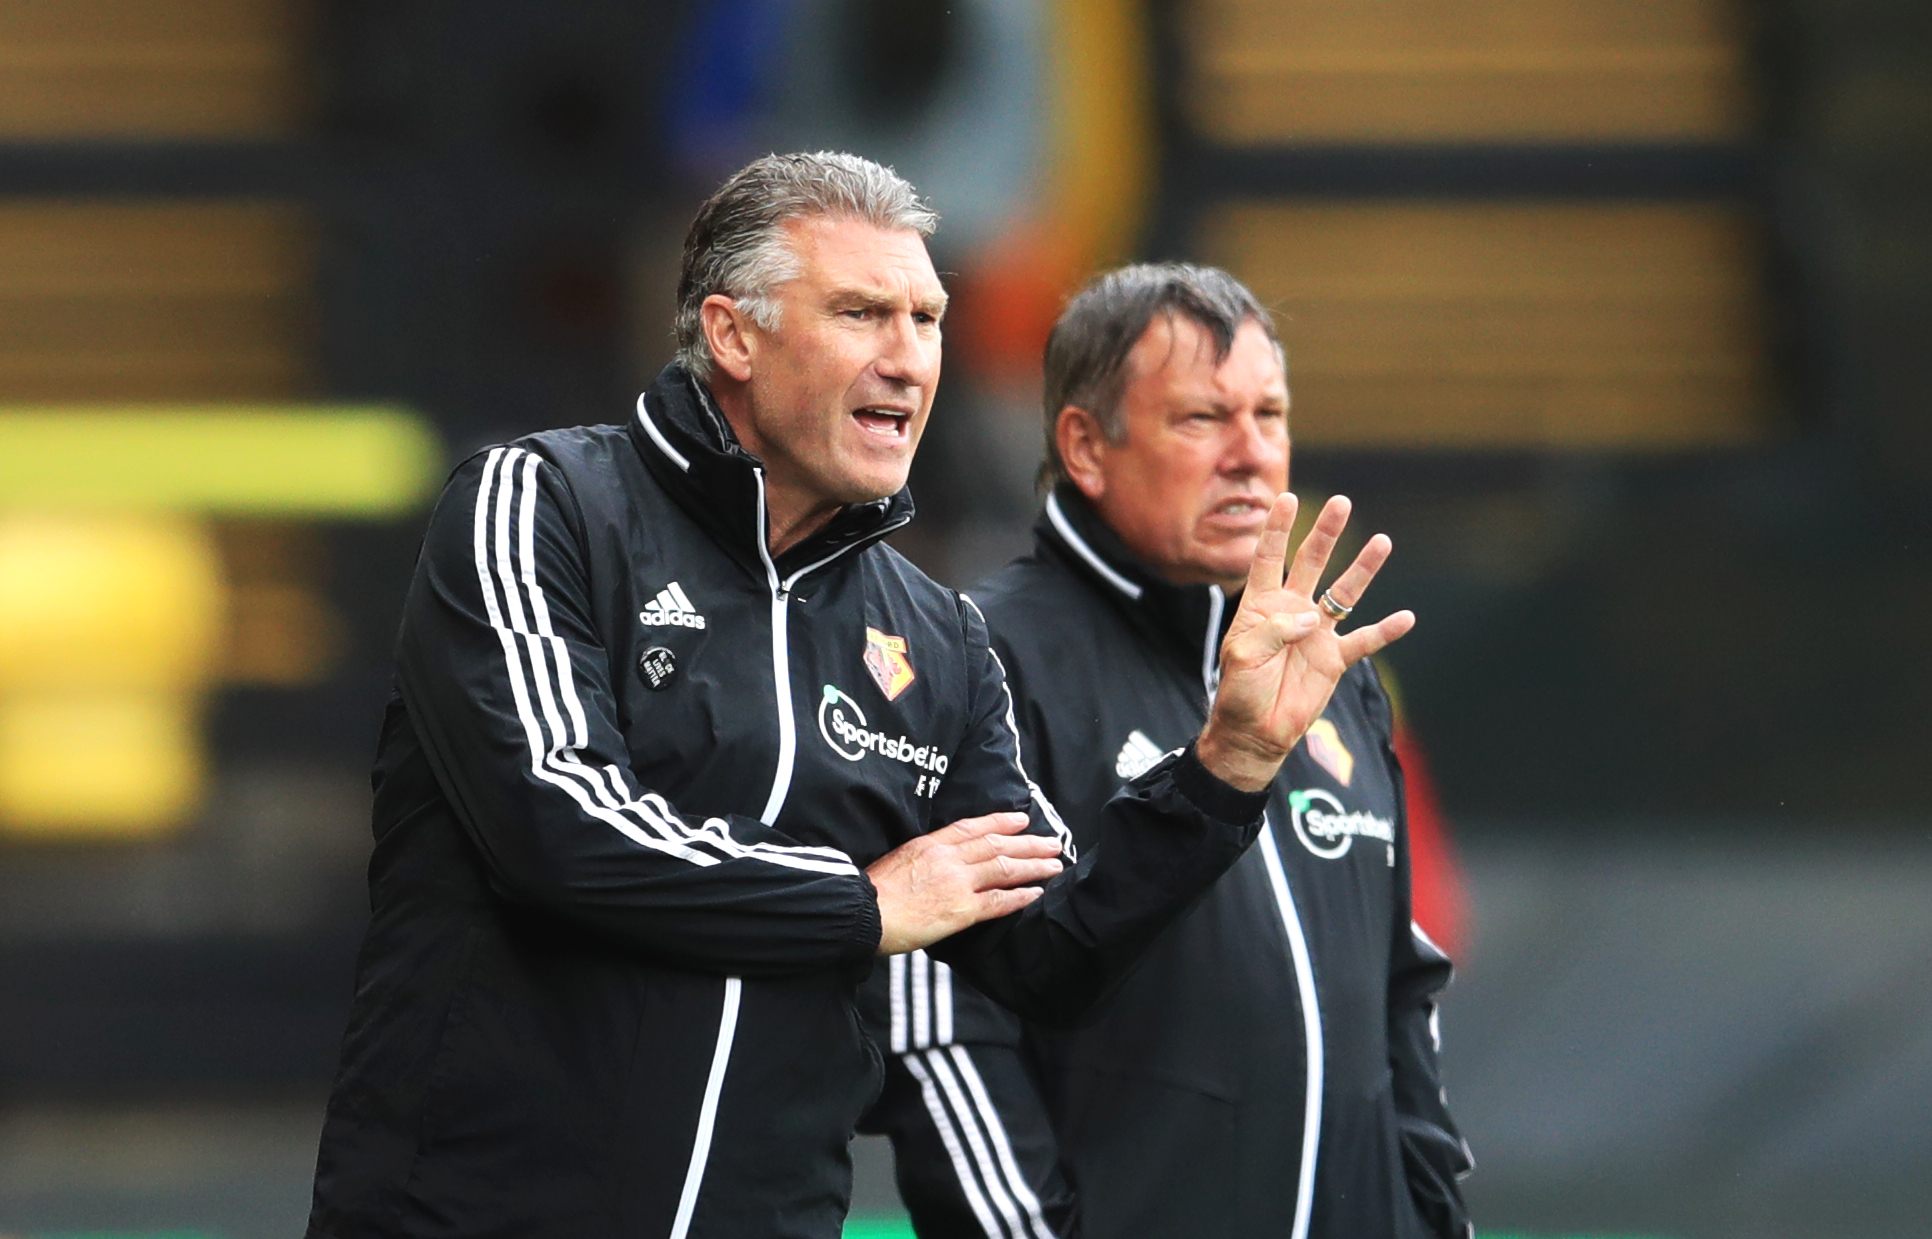 Watford manager Nigel Pearson gestures on the touchline during the Premier League match at Vicarage Road, Watford.